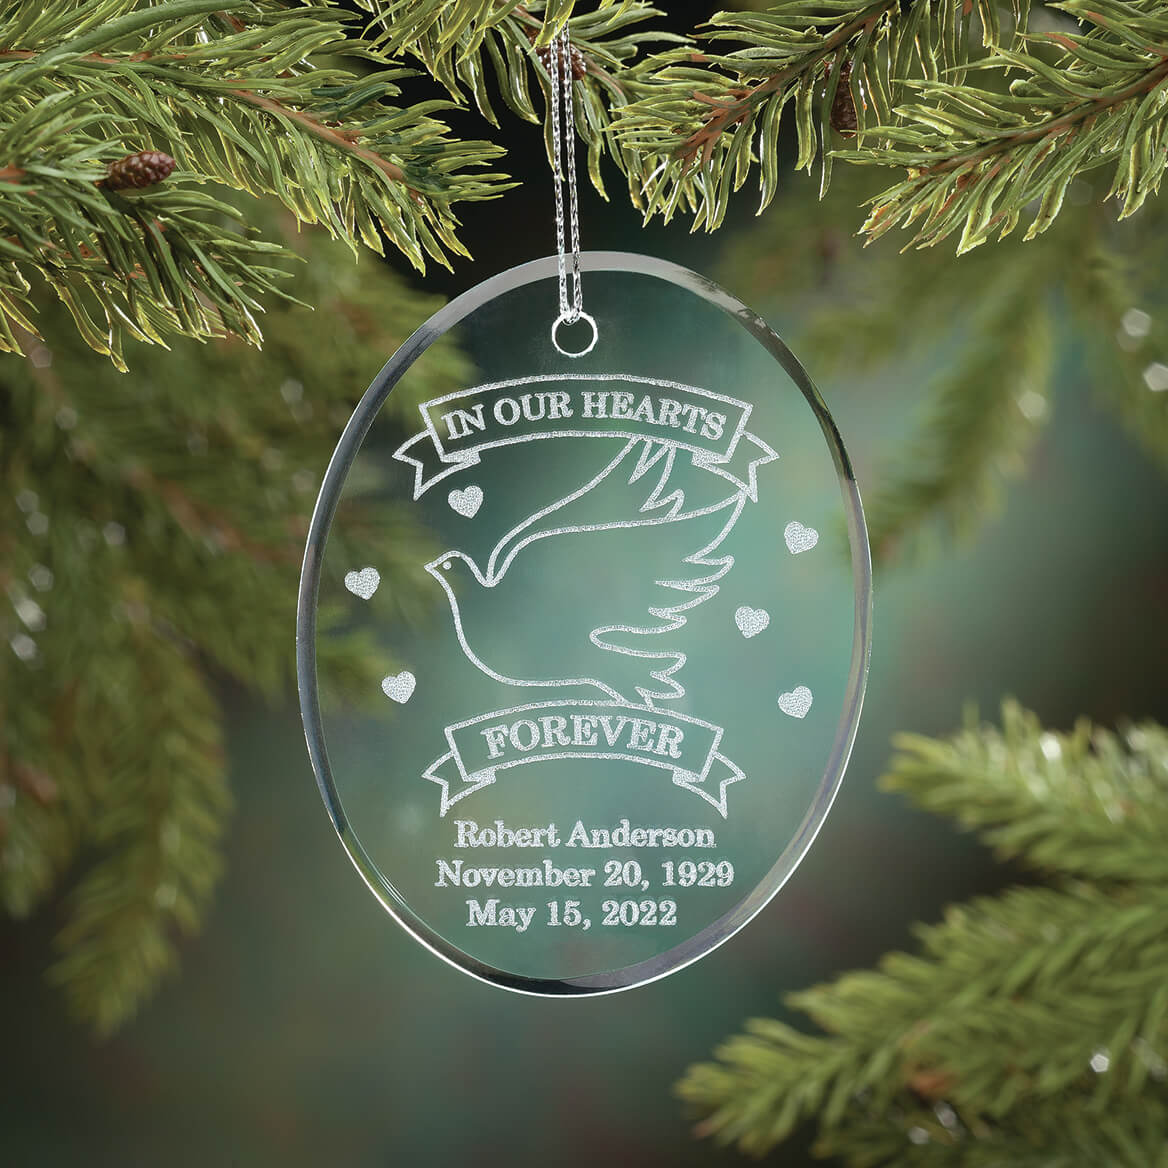 personalized memorial ornament glass ornament miles kimball